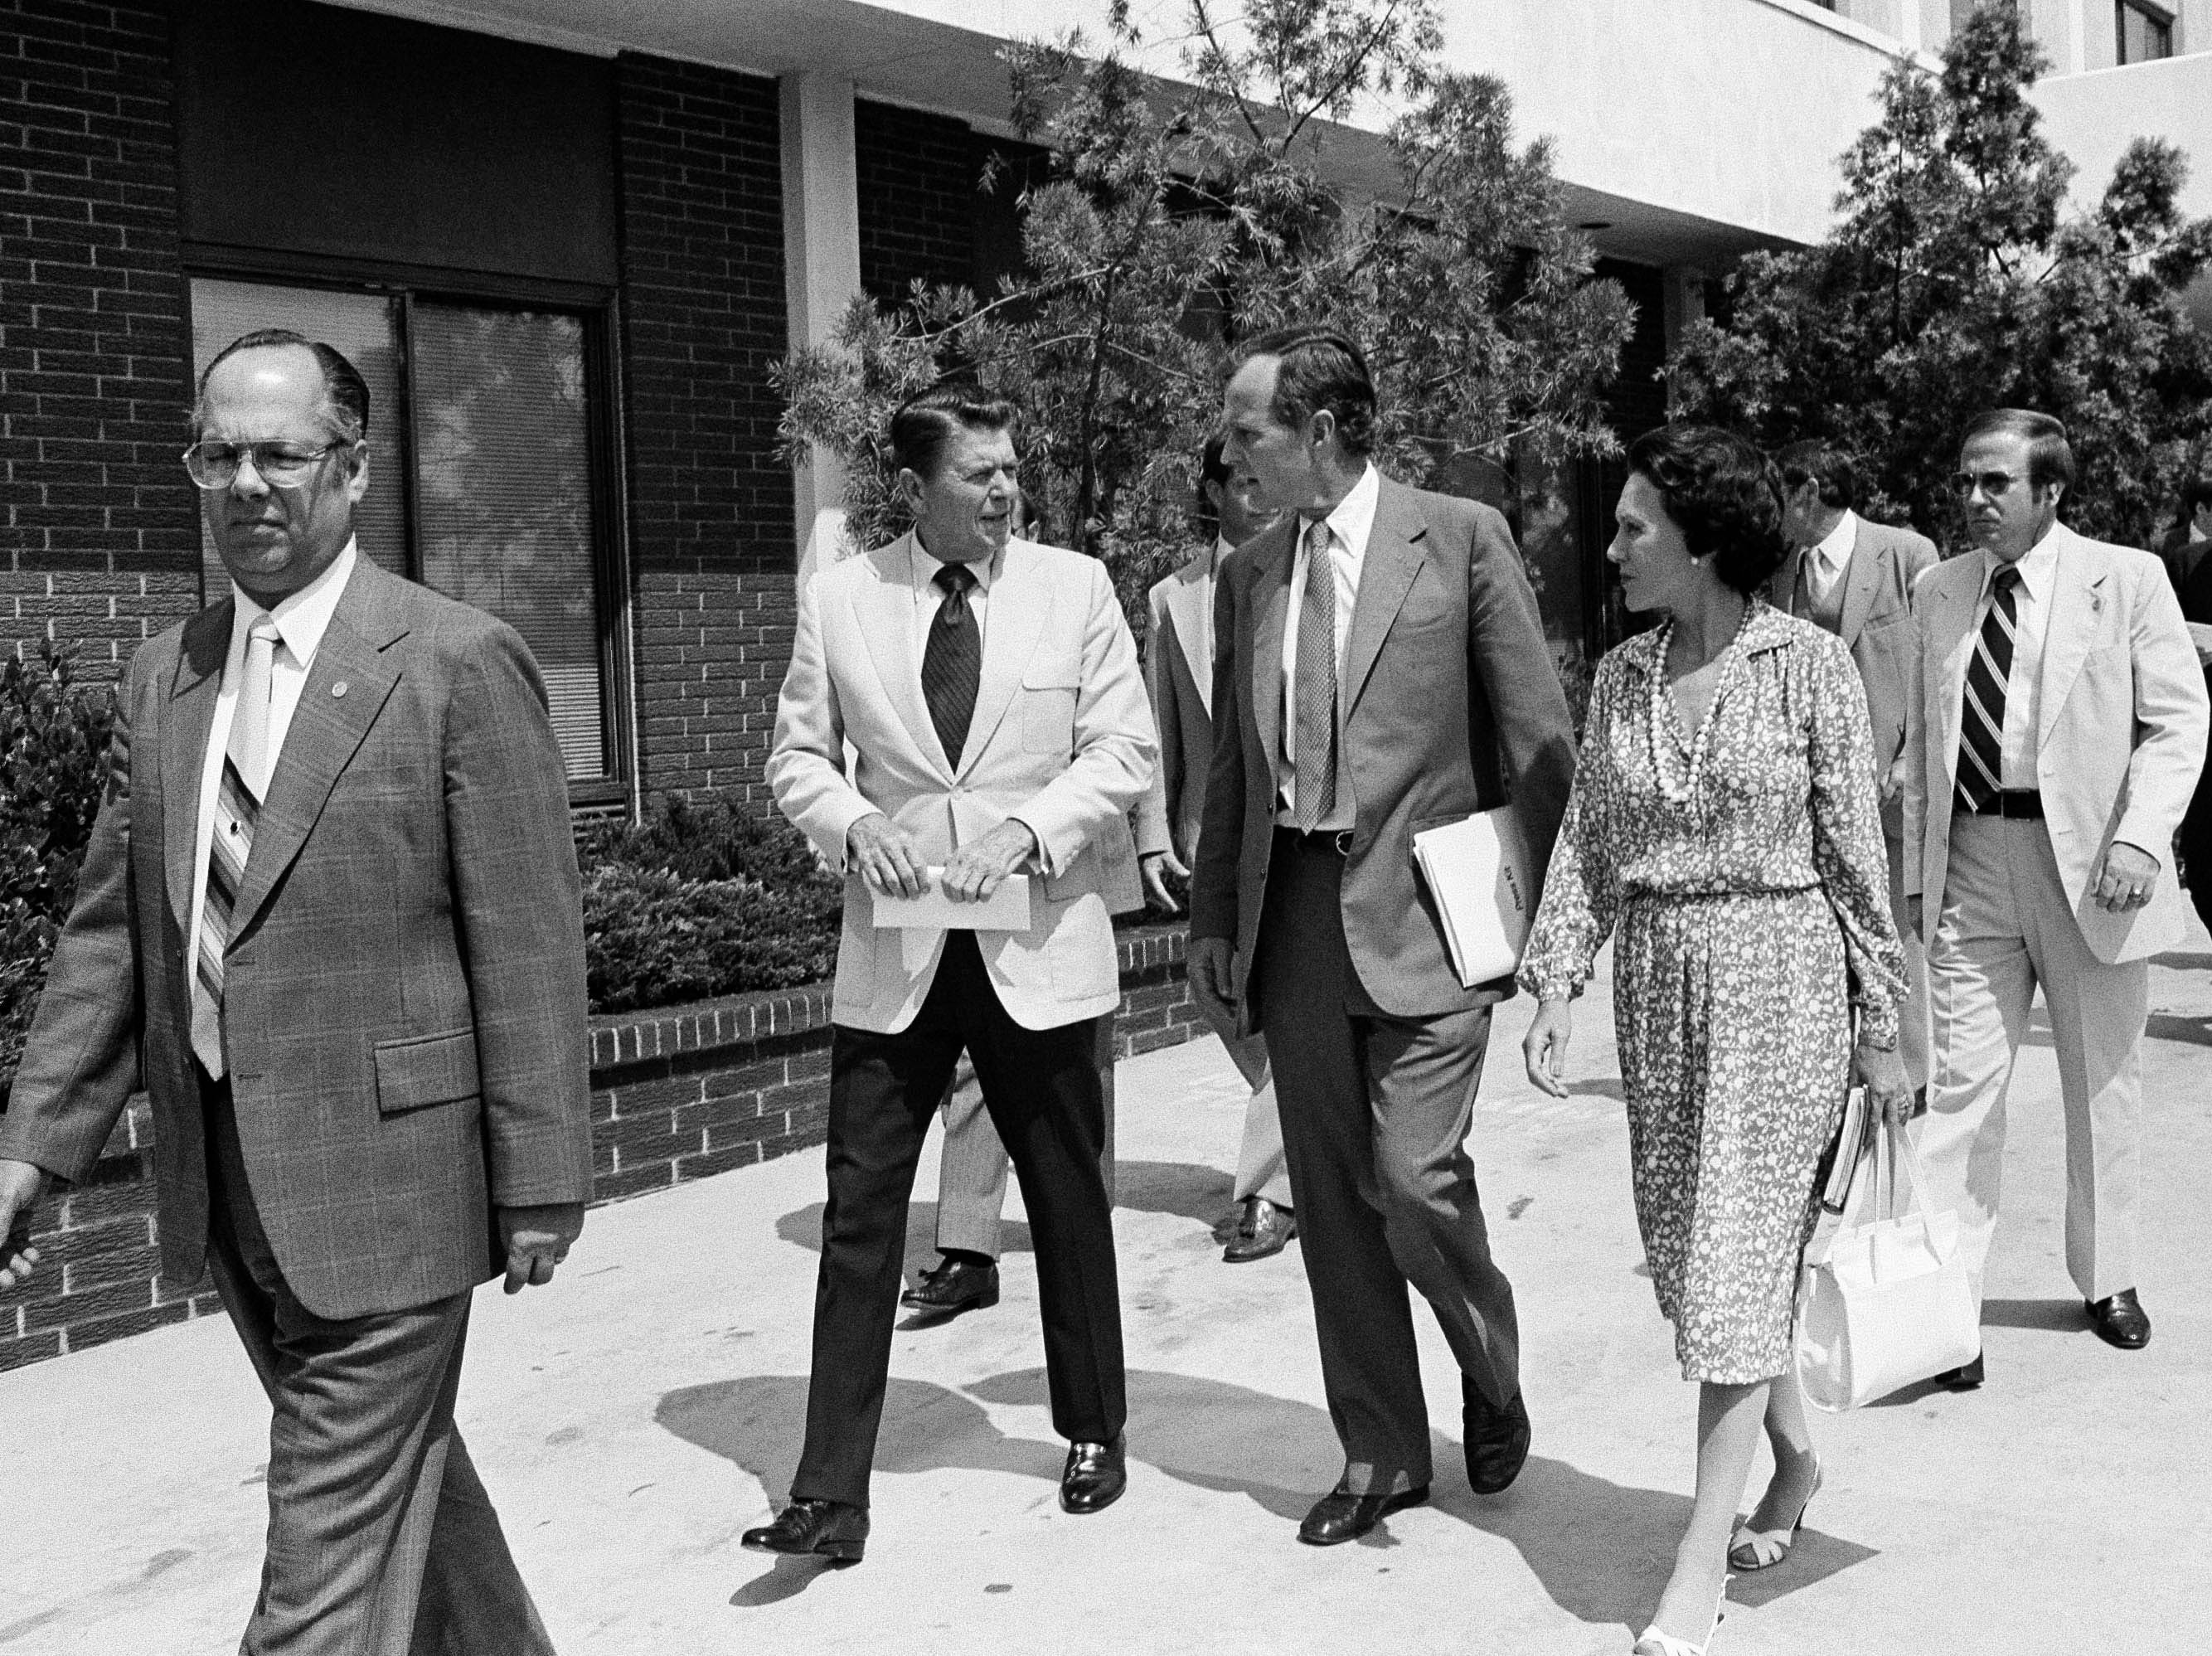 Republican presidential nominee Ronald Reagan, accompanied by vice-presidential nominee George H.W. Bush and Anne Armstrong, at right,  Reagan's newly appointed campaign co-chairperson, head for a news conference in Los Angeles on July 25, 1980. Reagan announced he and Bush are successfully merging their campaigns. Unidentified security people accompany the nominee. (AP Photo/Wally Fong)